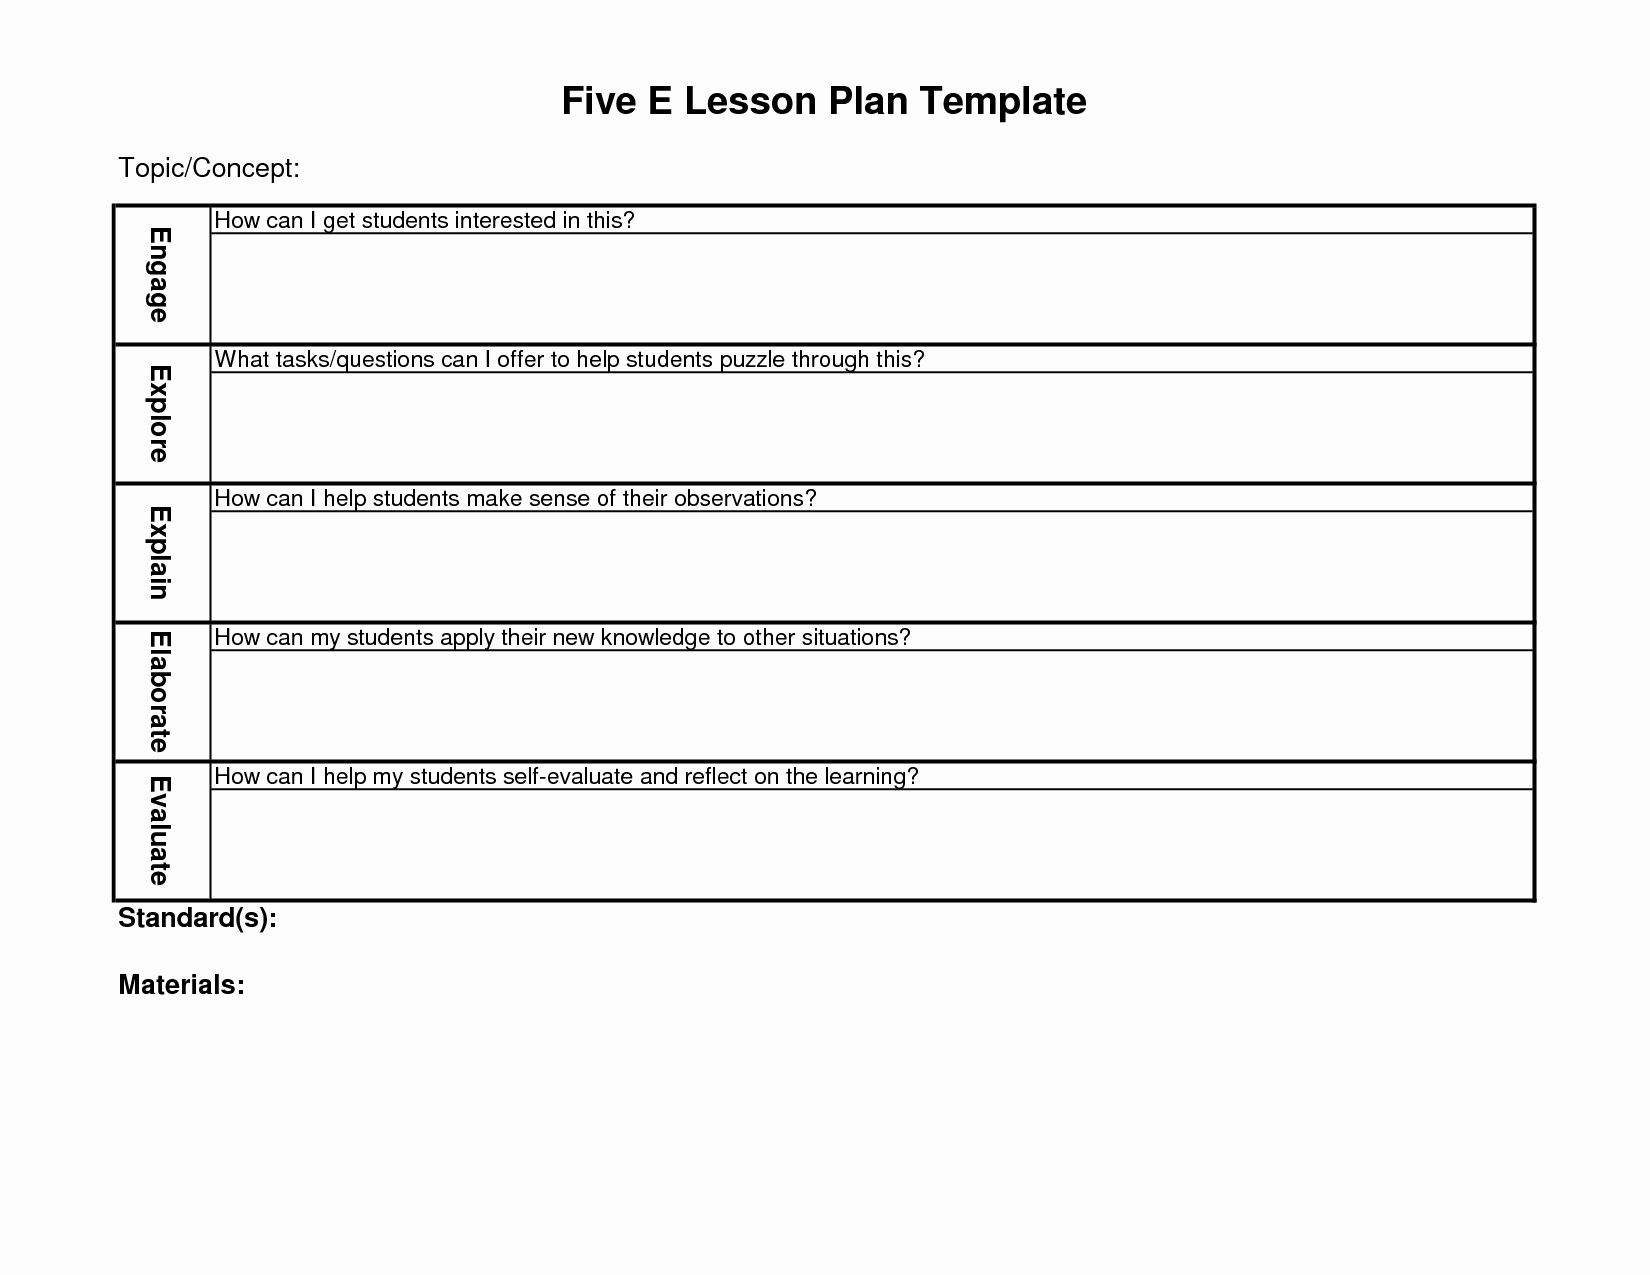 Lesson Plan Outline Template Best Of 5 E Lesson Plan Template